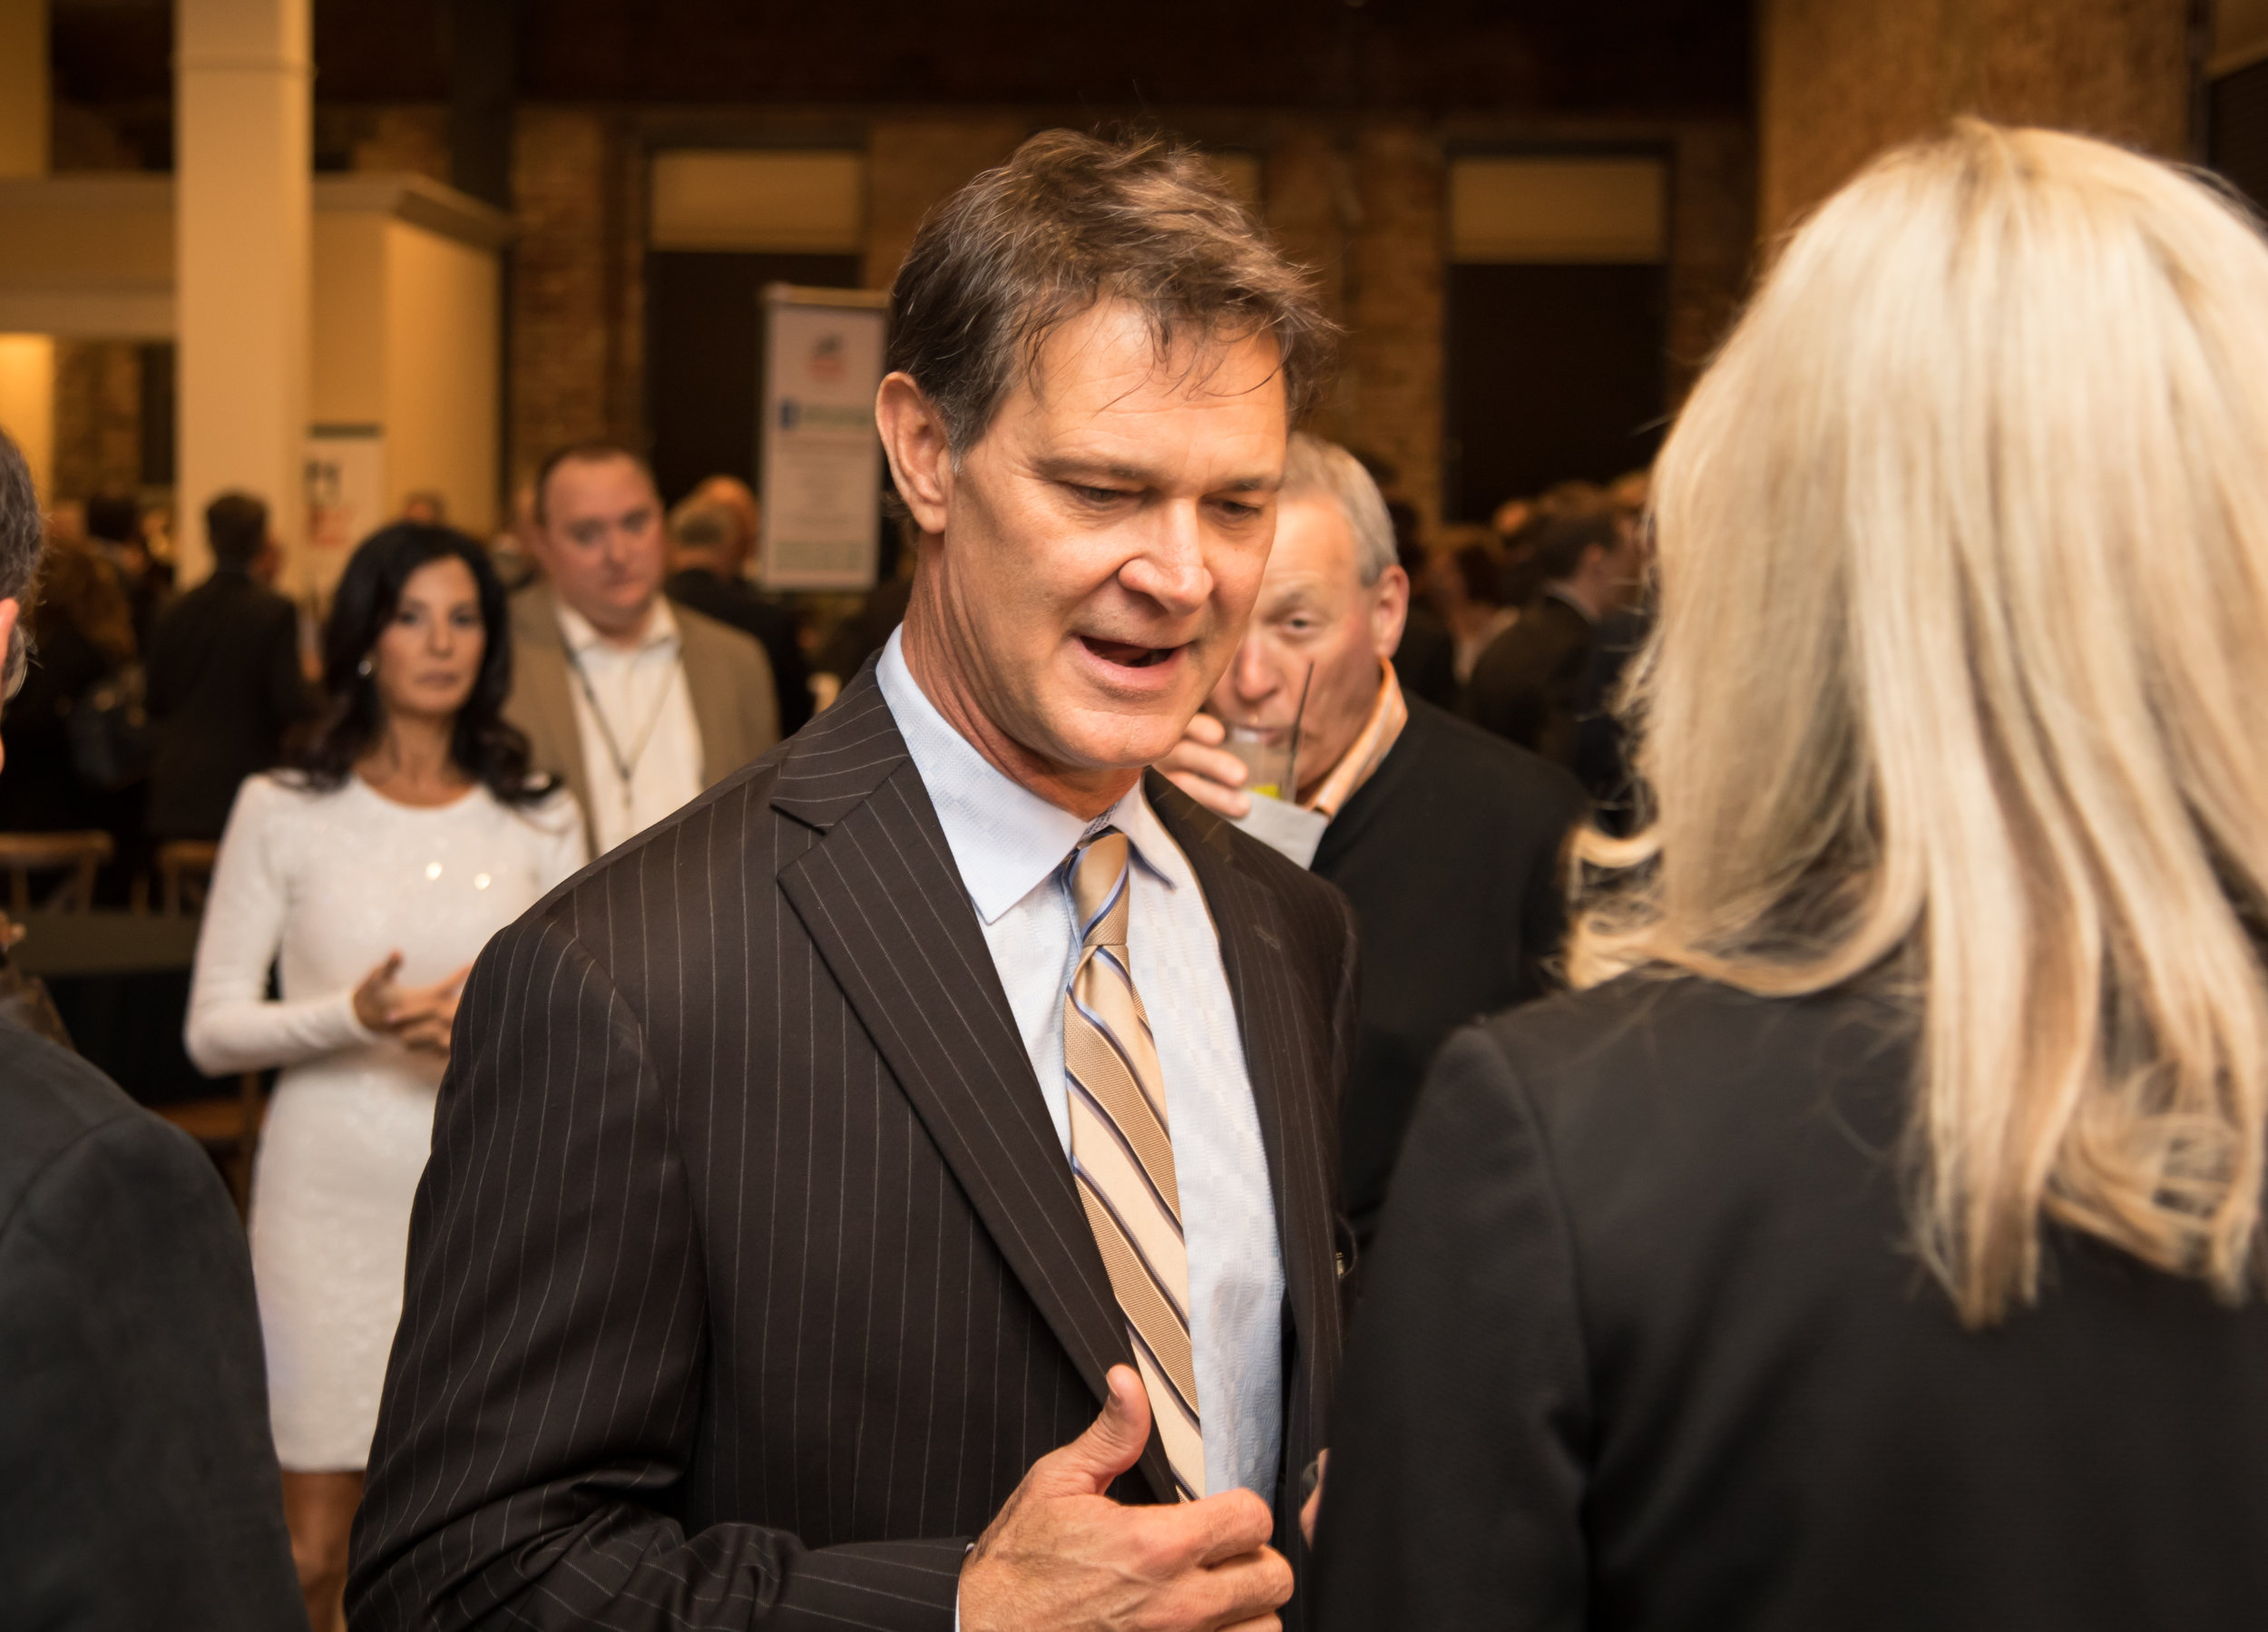 1-10-2019 Mattingly Charity Event-155.jpg